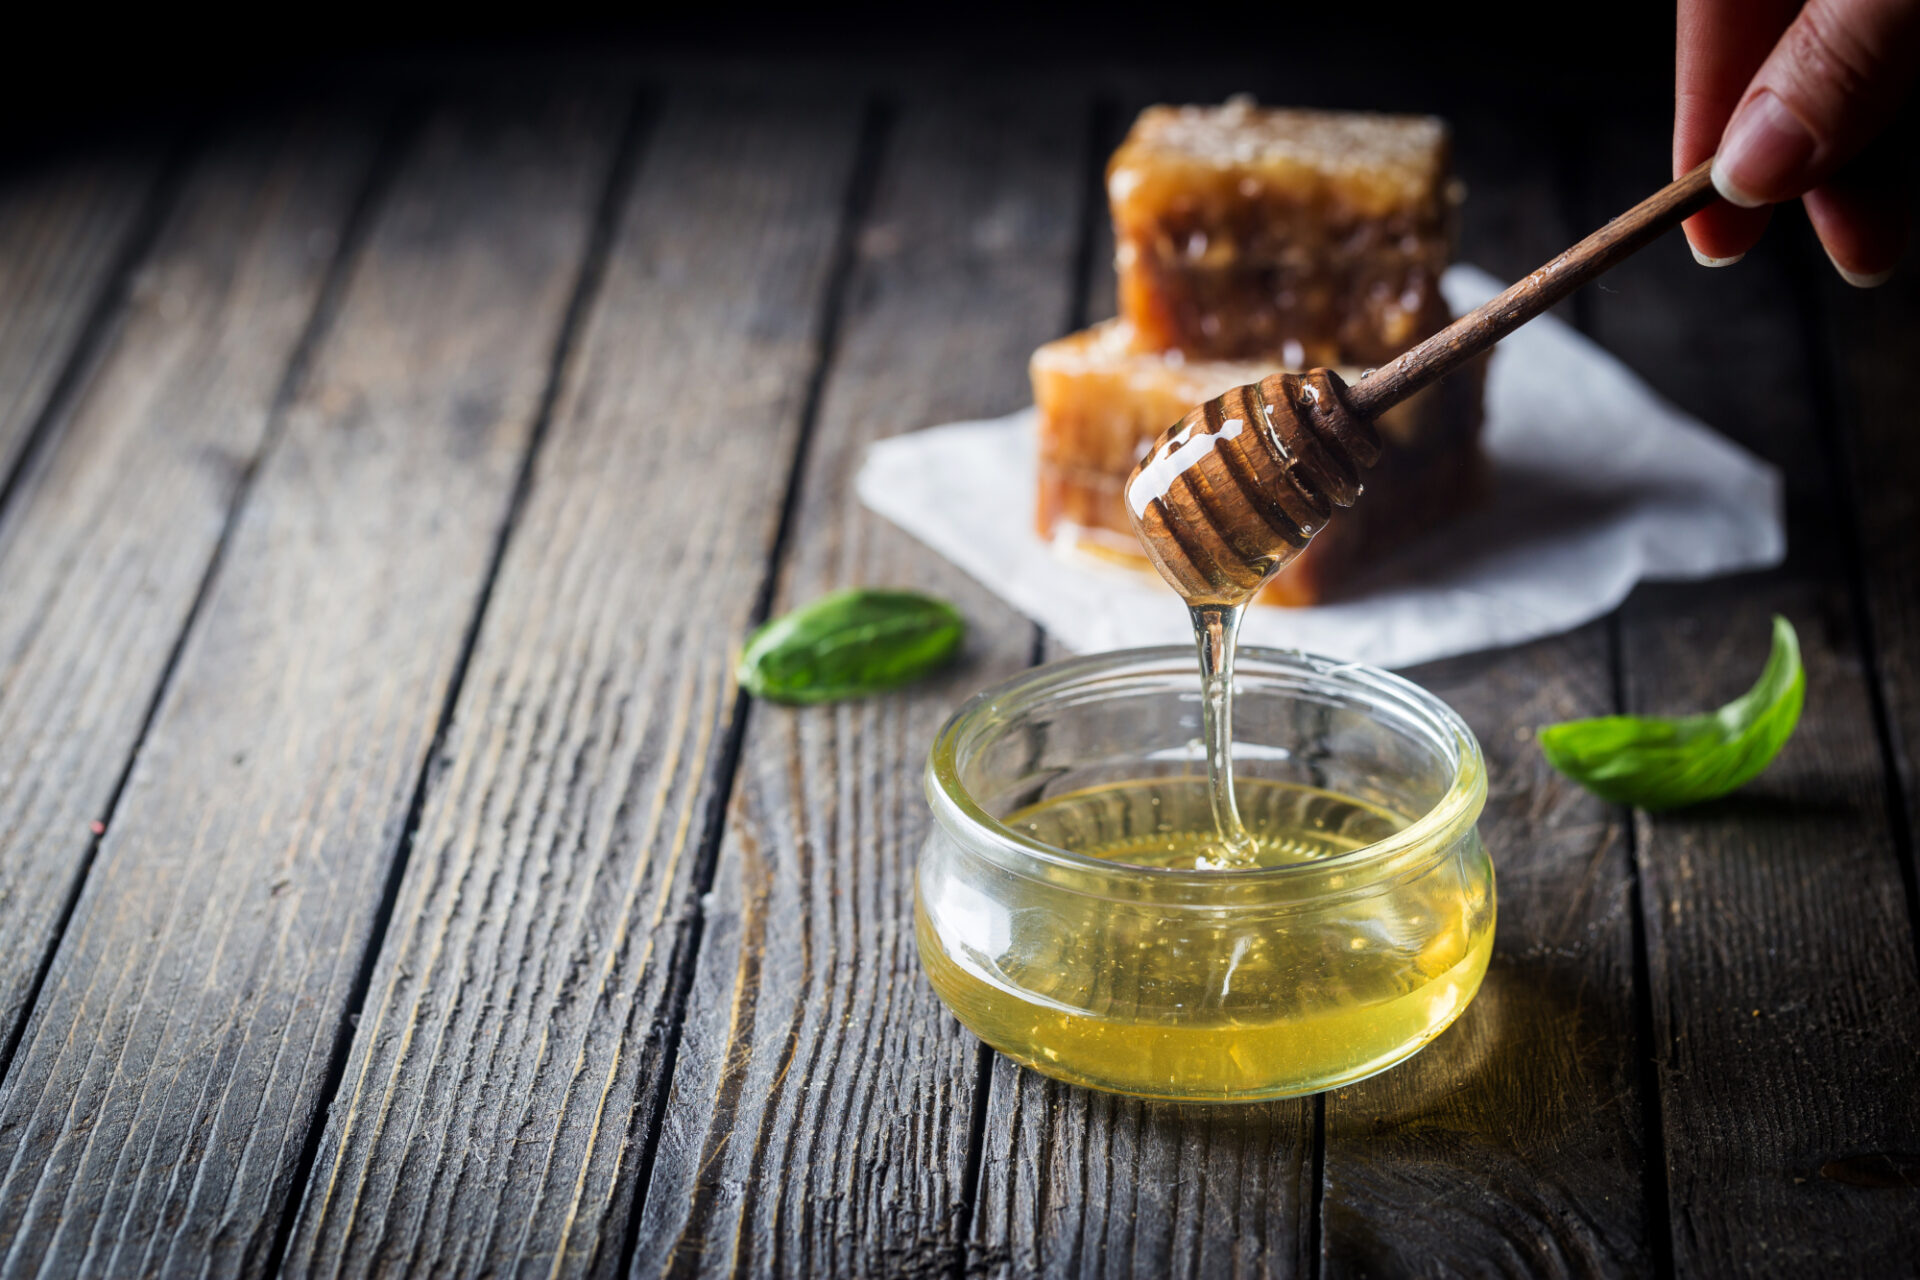 Sweet and enticing: Honey for your customer loyalty